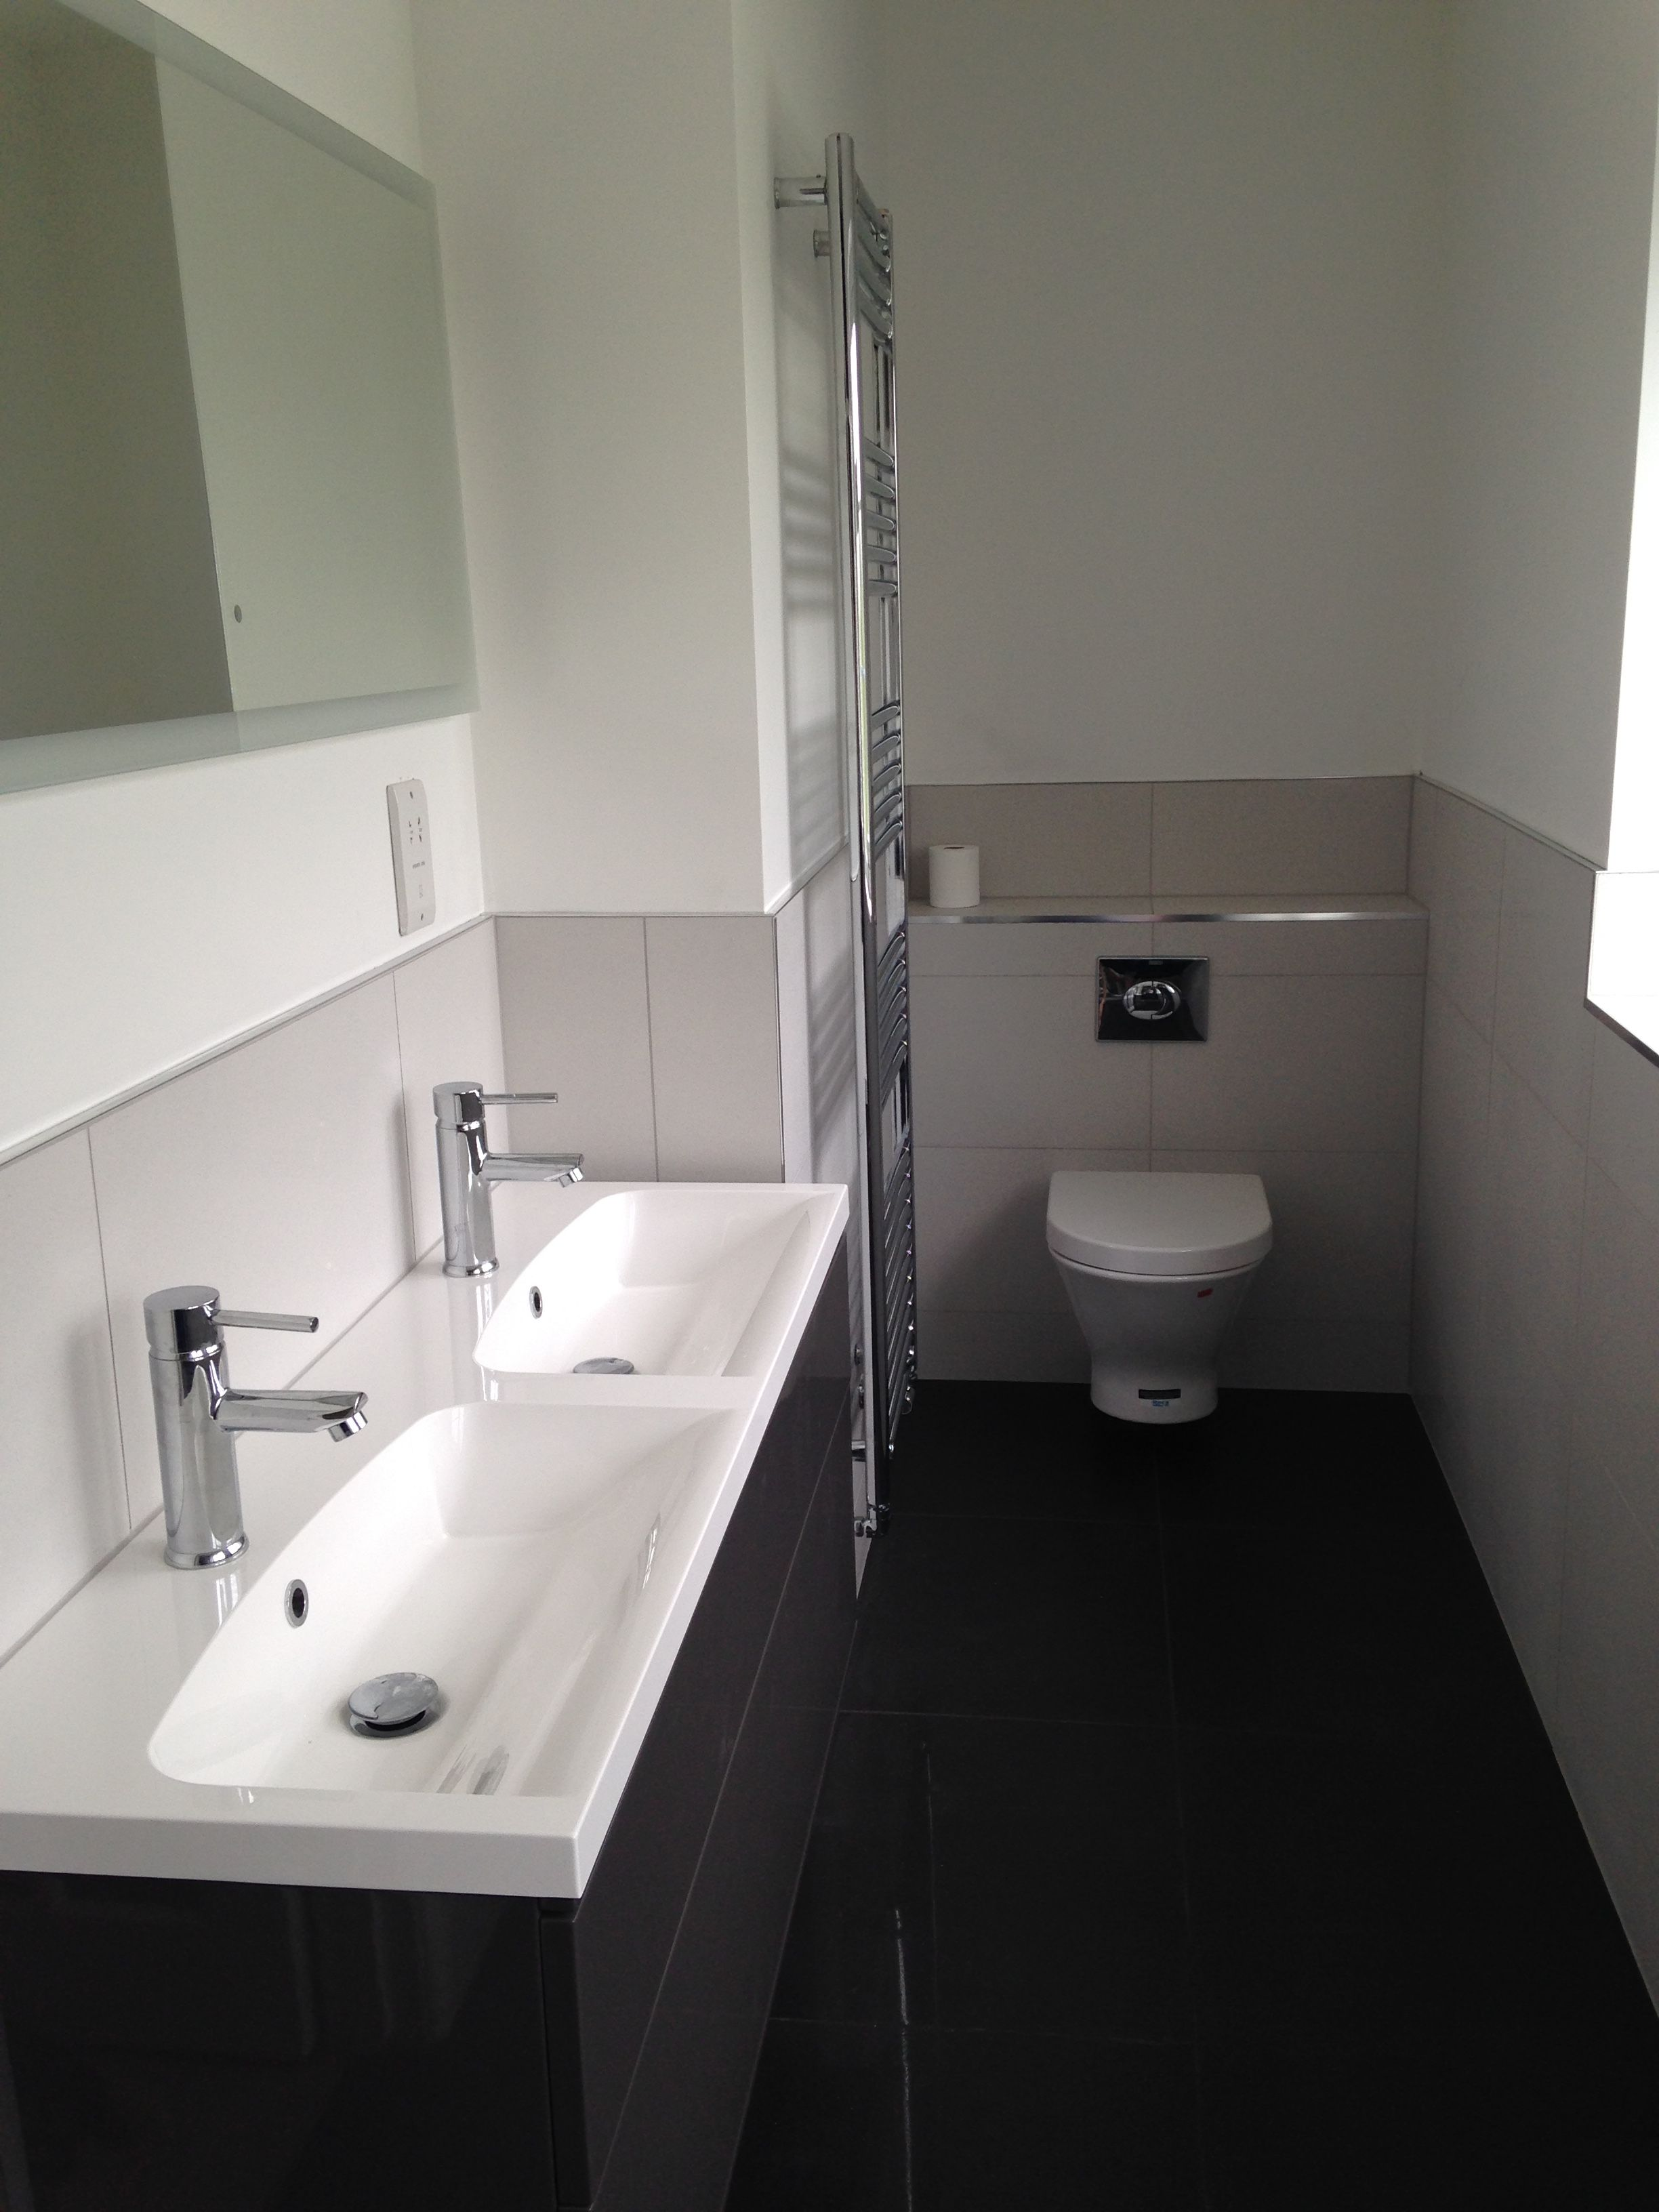 New bathroom with roper Rhodes double sink